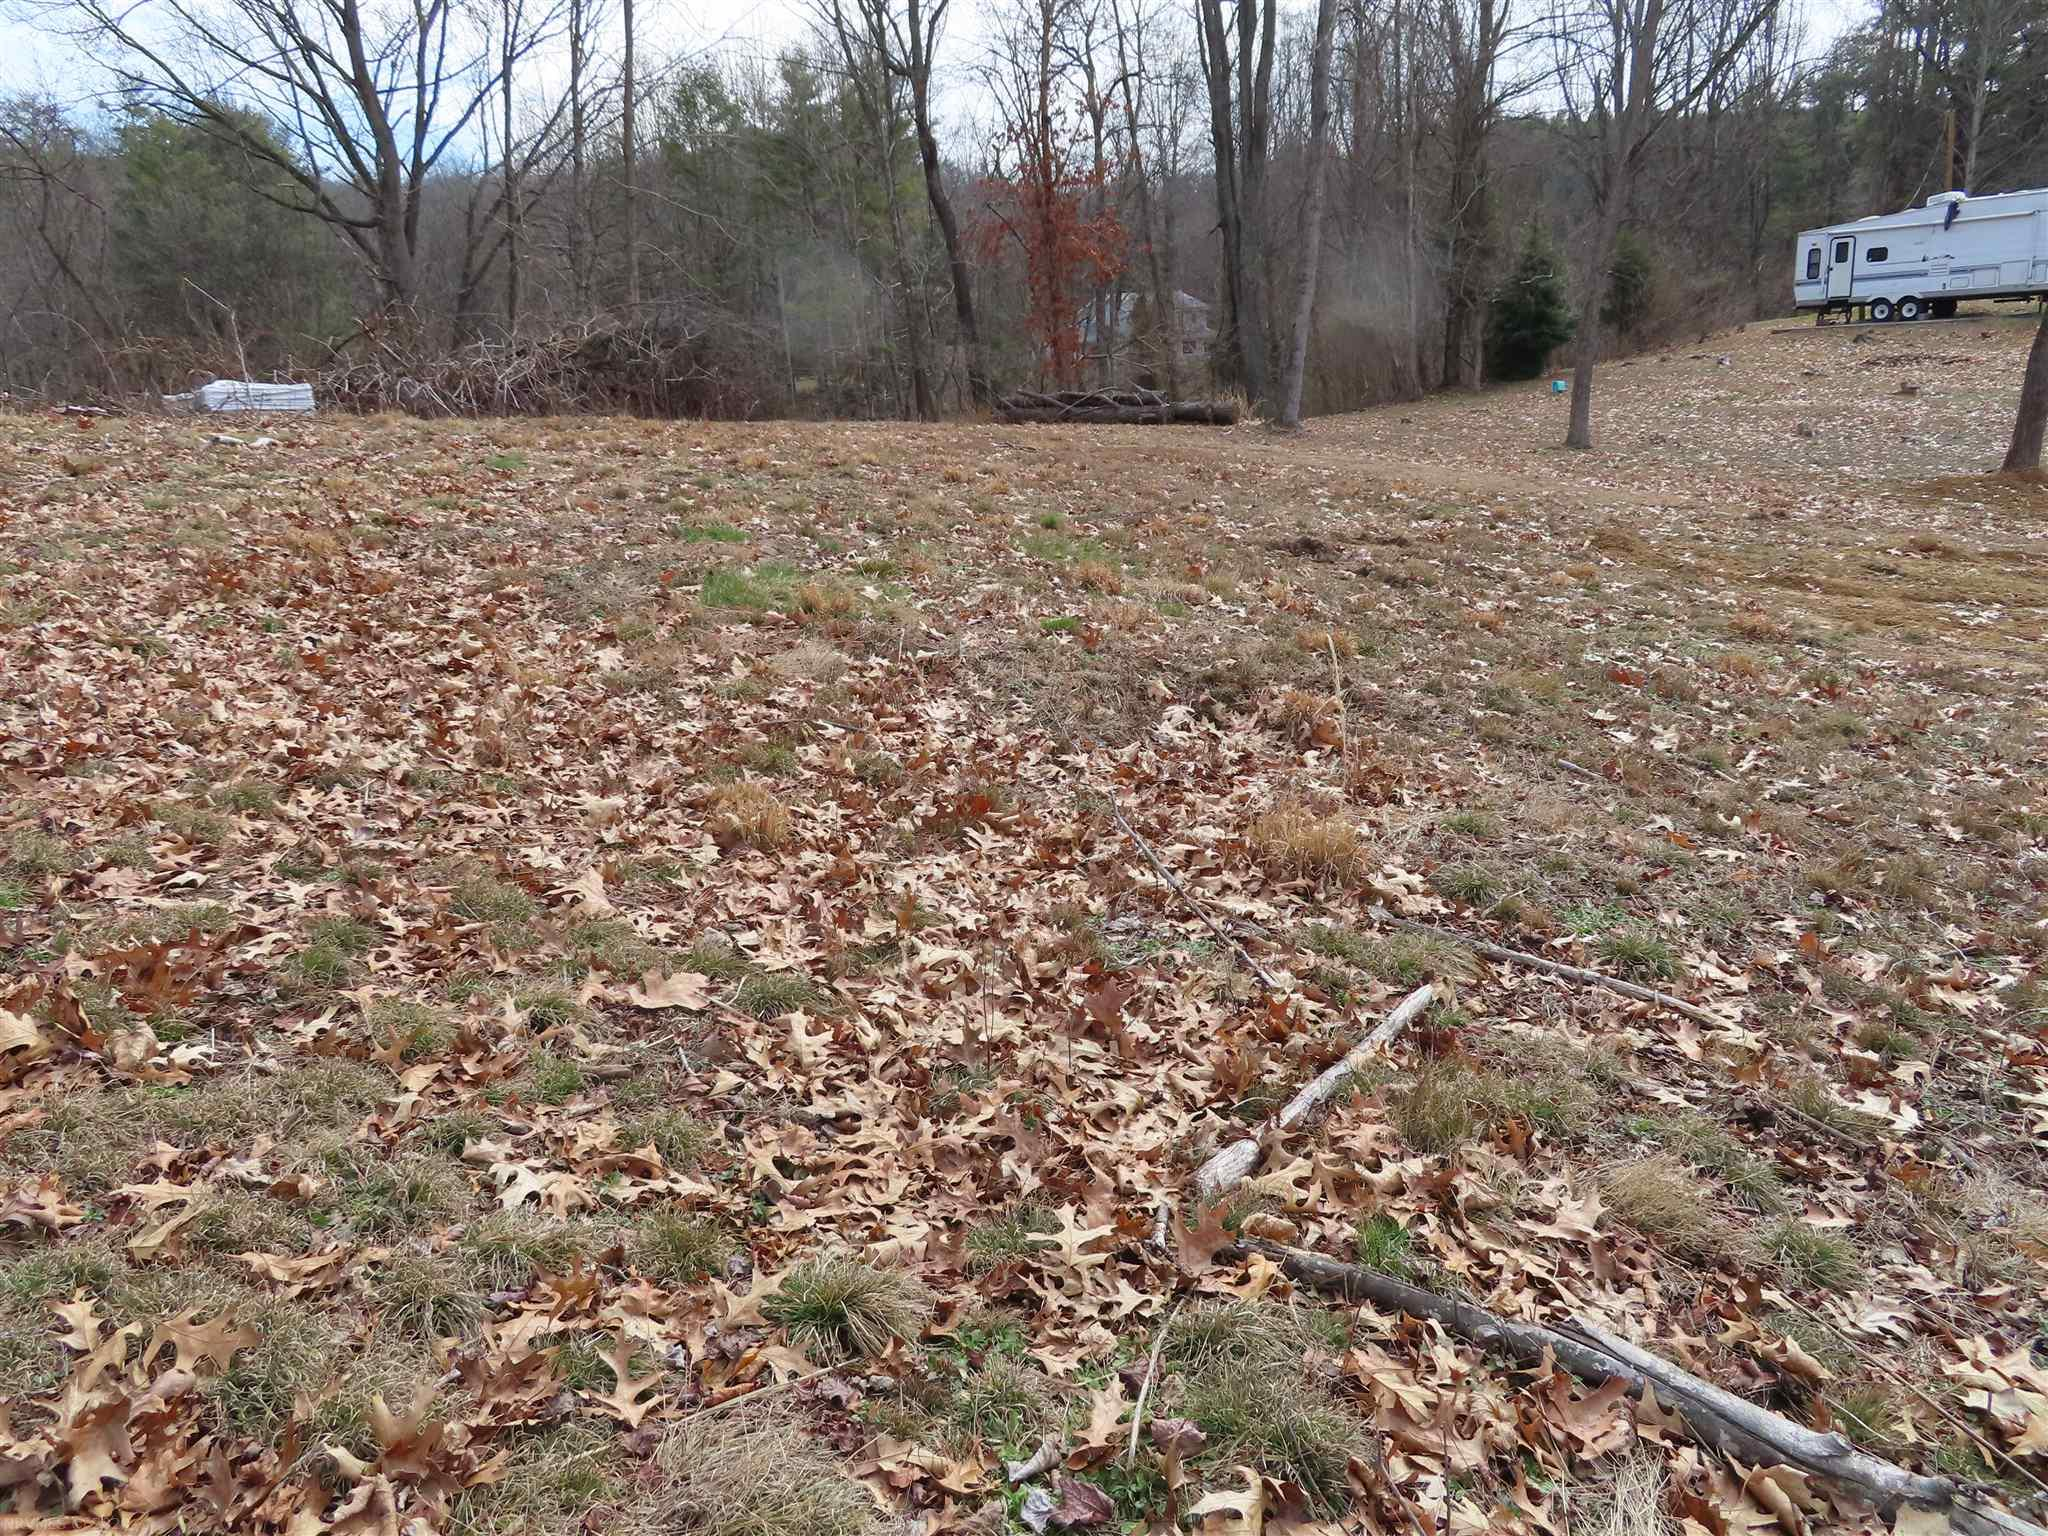 Cleared (Approx.) 1/2 acre in Lakeview Subdivision - Pulaski Co. - water view lot located on a cul-de-sac. Survey on file, septic and well approved. Deeded boat slip. Absolutely ready for someone to purchase and build!!  Be ready to enjoy the lake this summer!!!!